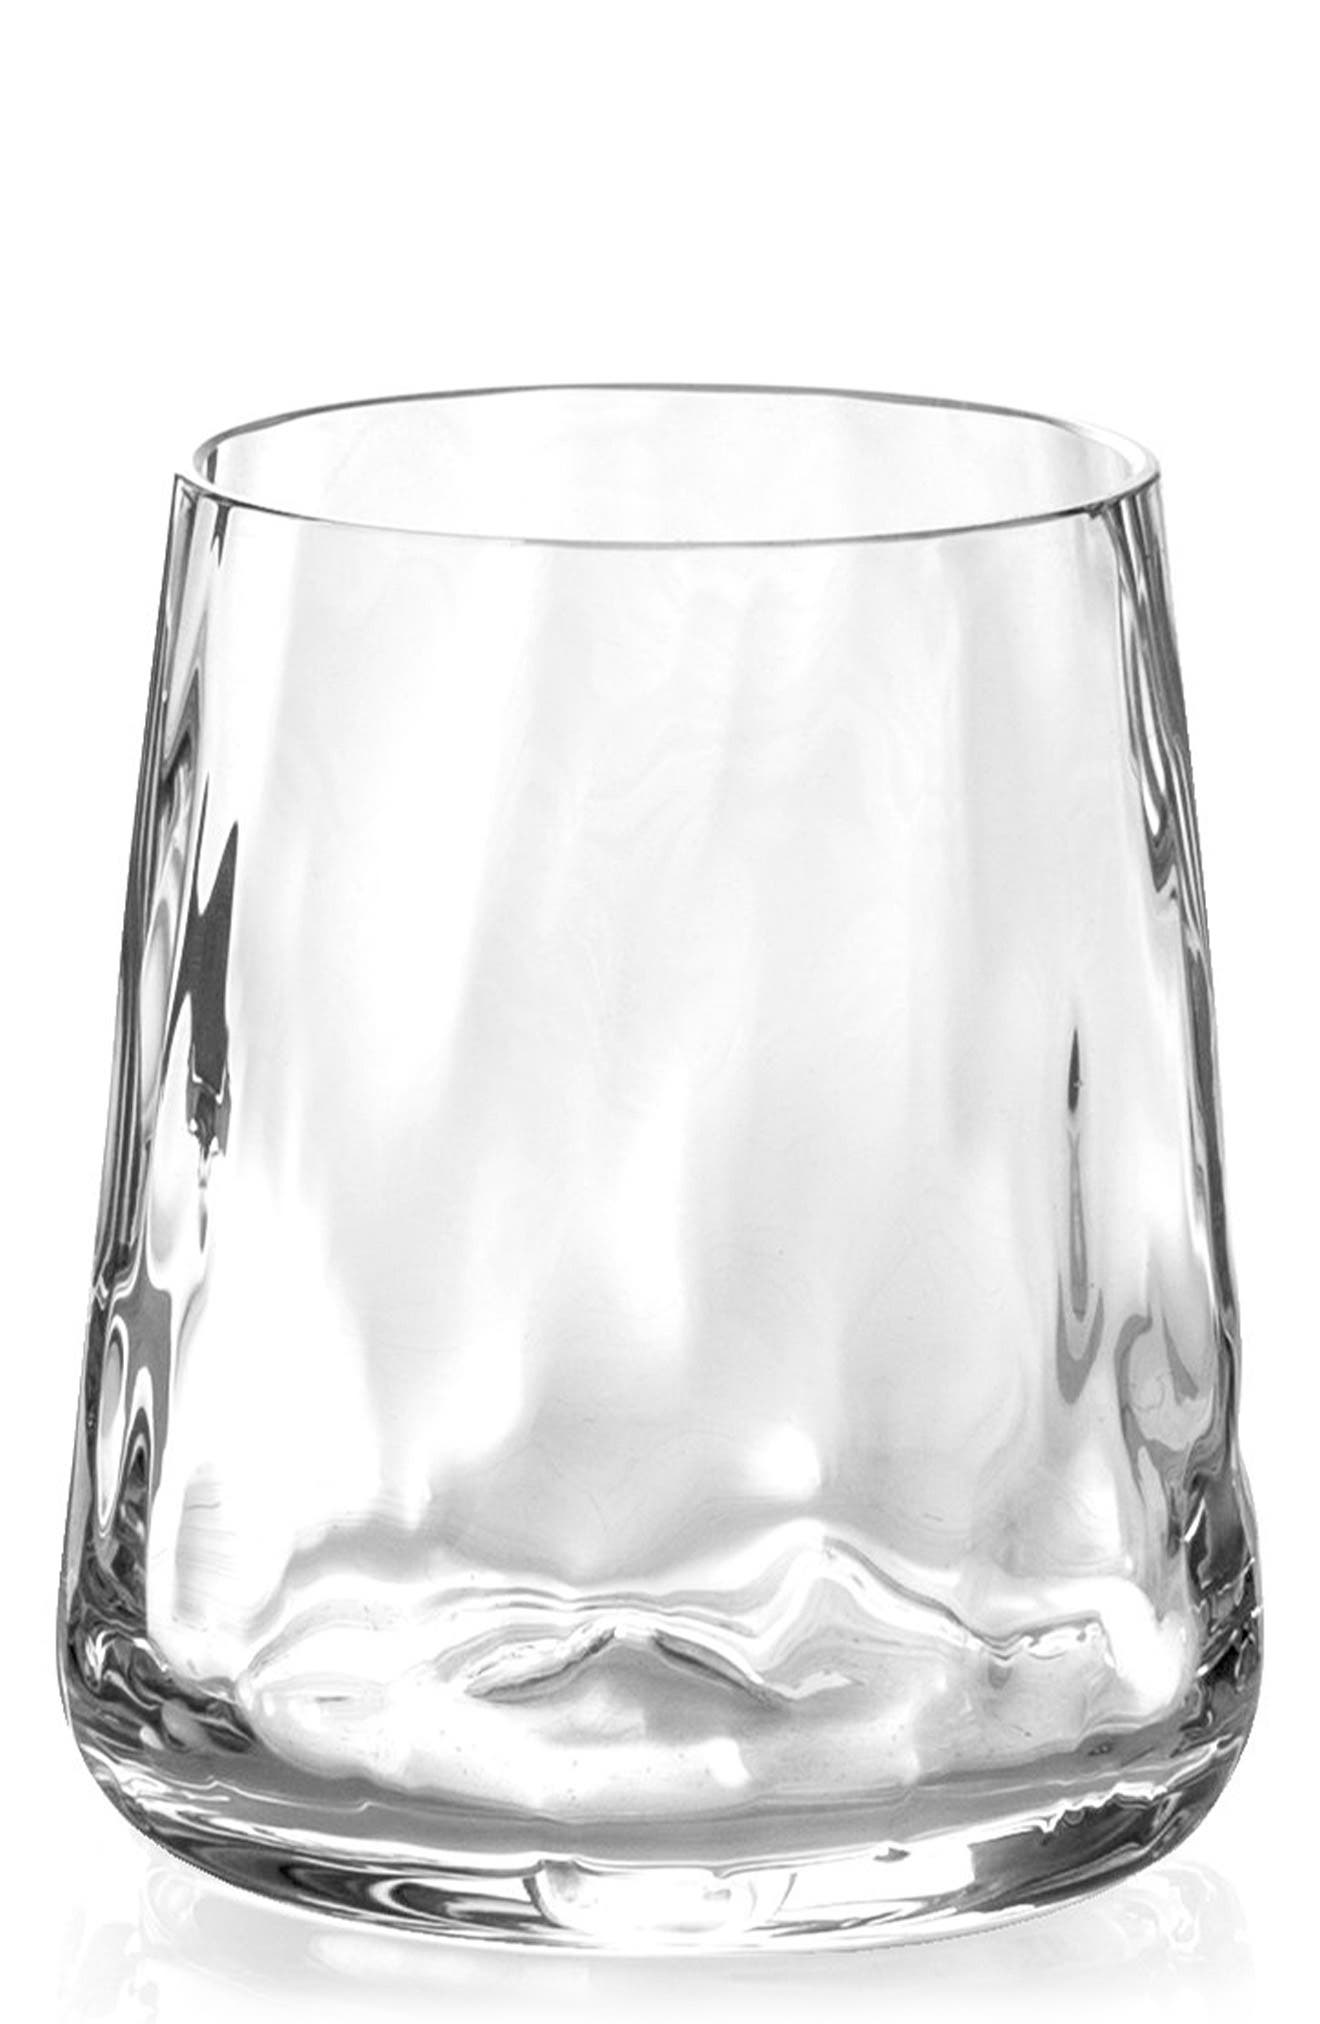 Alternate Image 1 Selected - Michael Aram Ripple Effect Set of 4 Double Old Fashioned Glasses